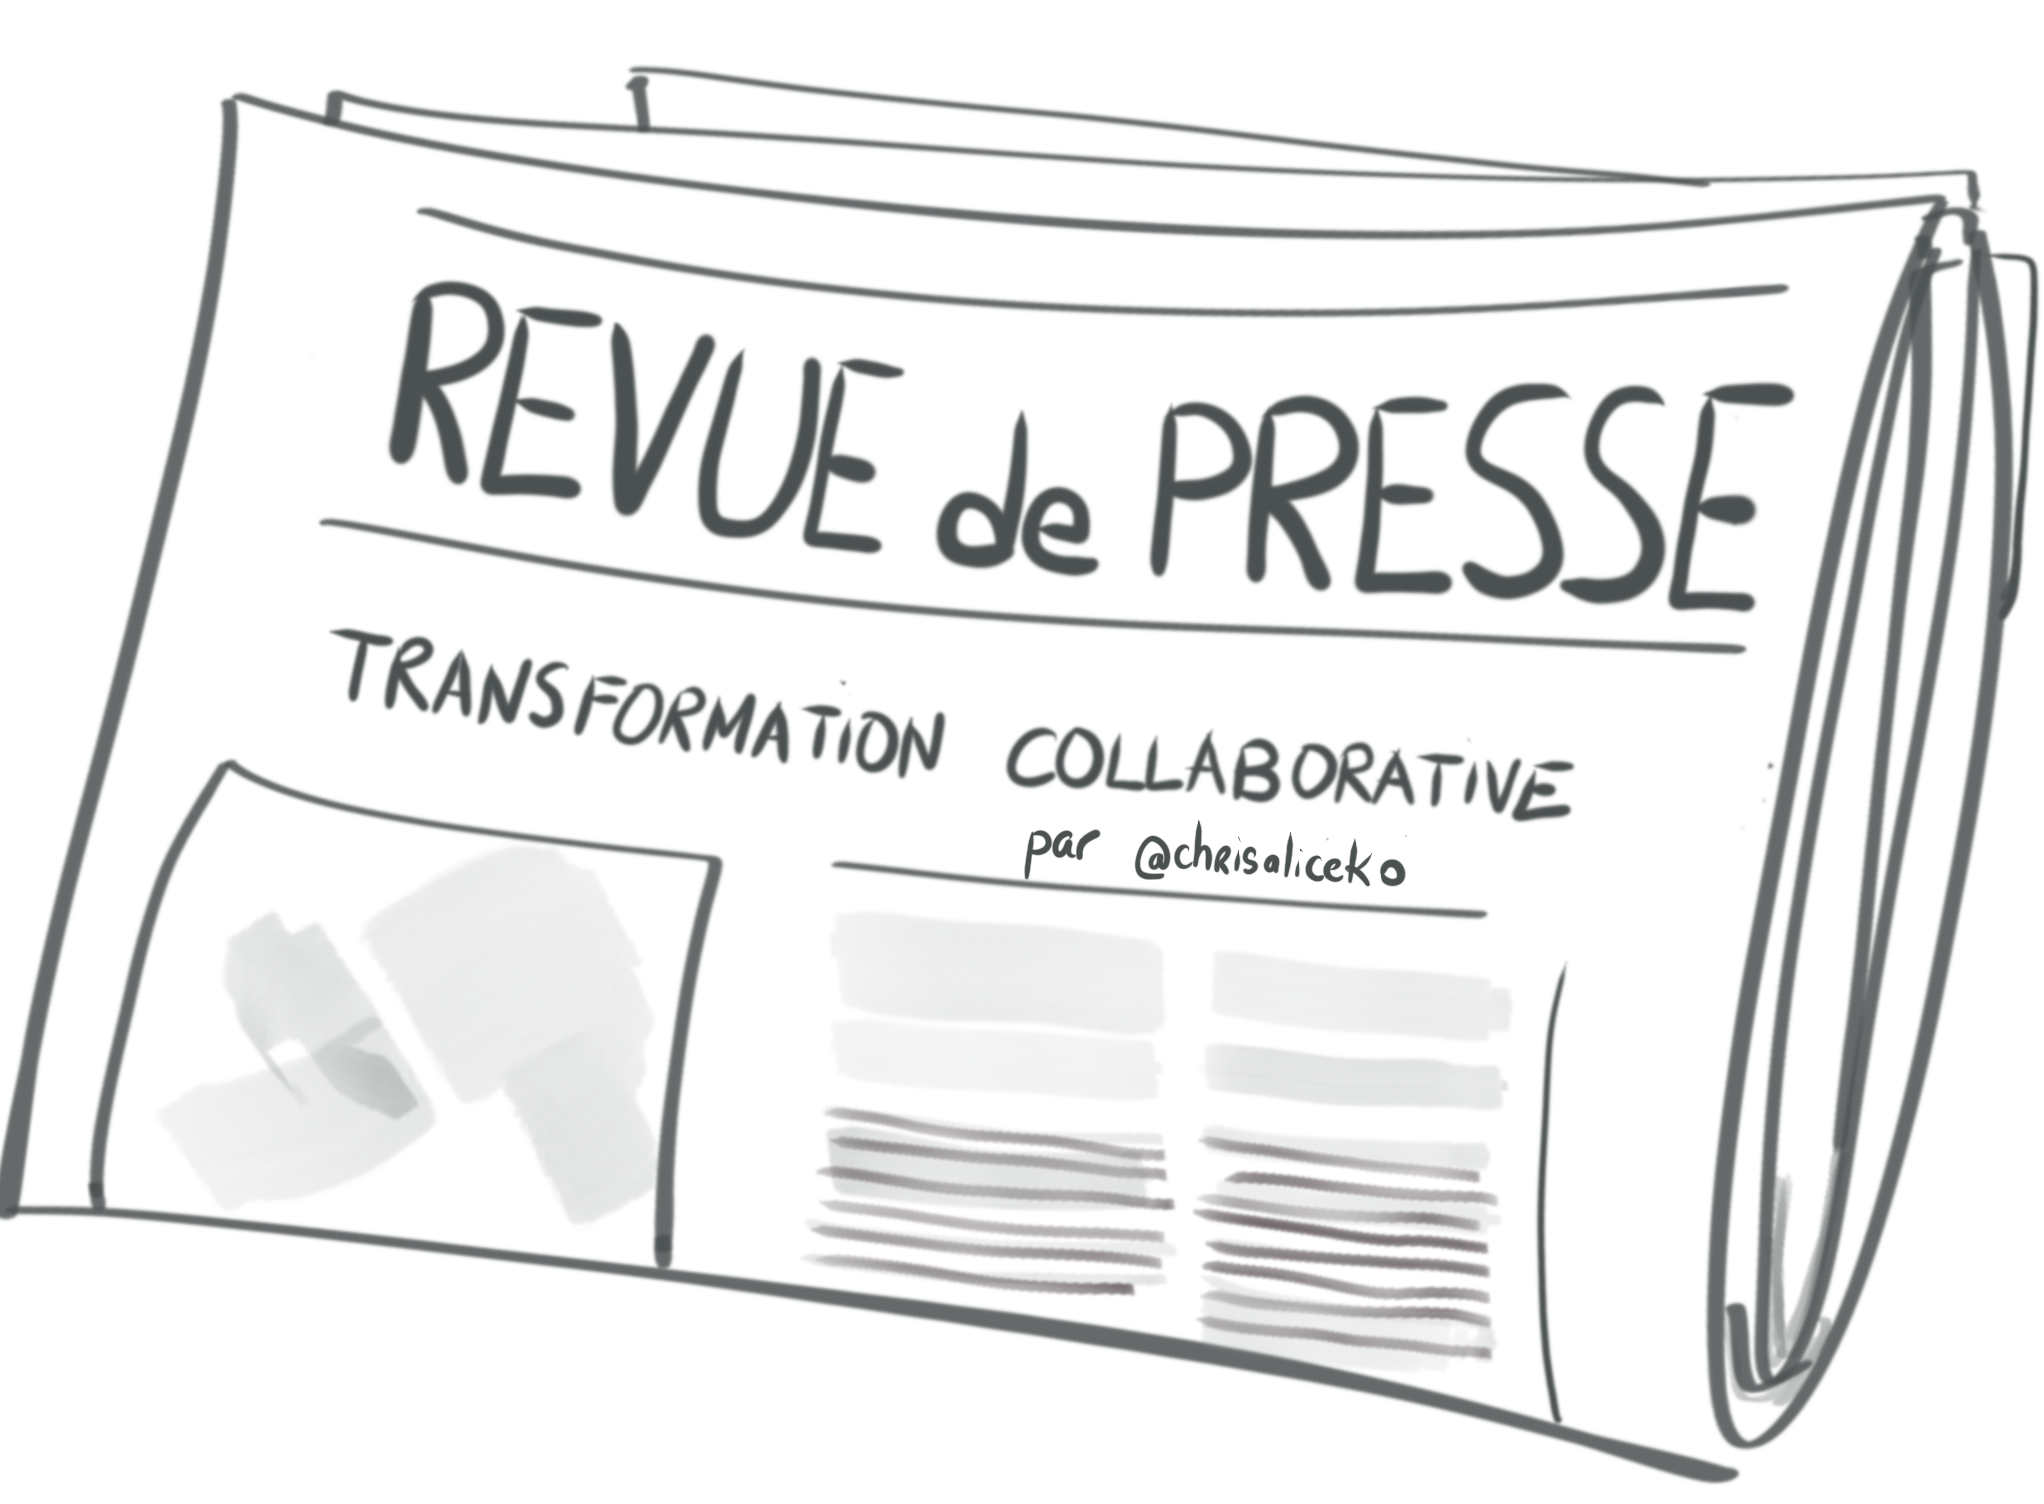 Revue de presse de la transformation collaborative sketch